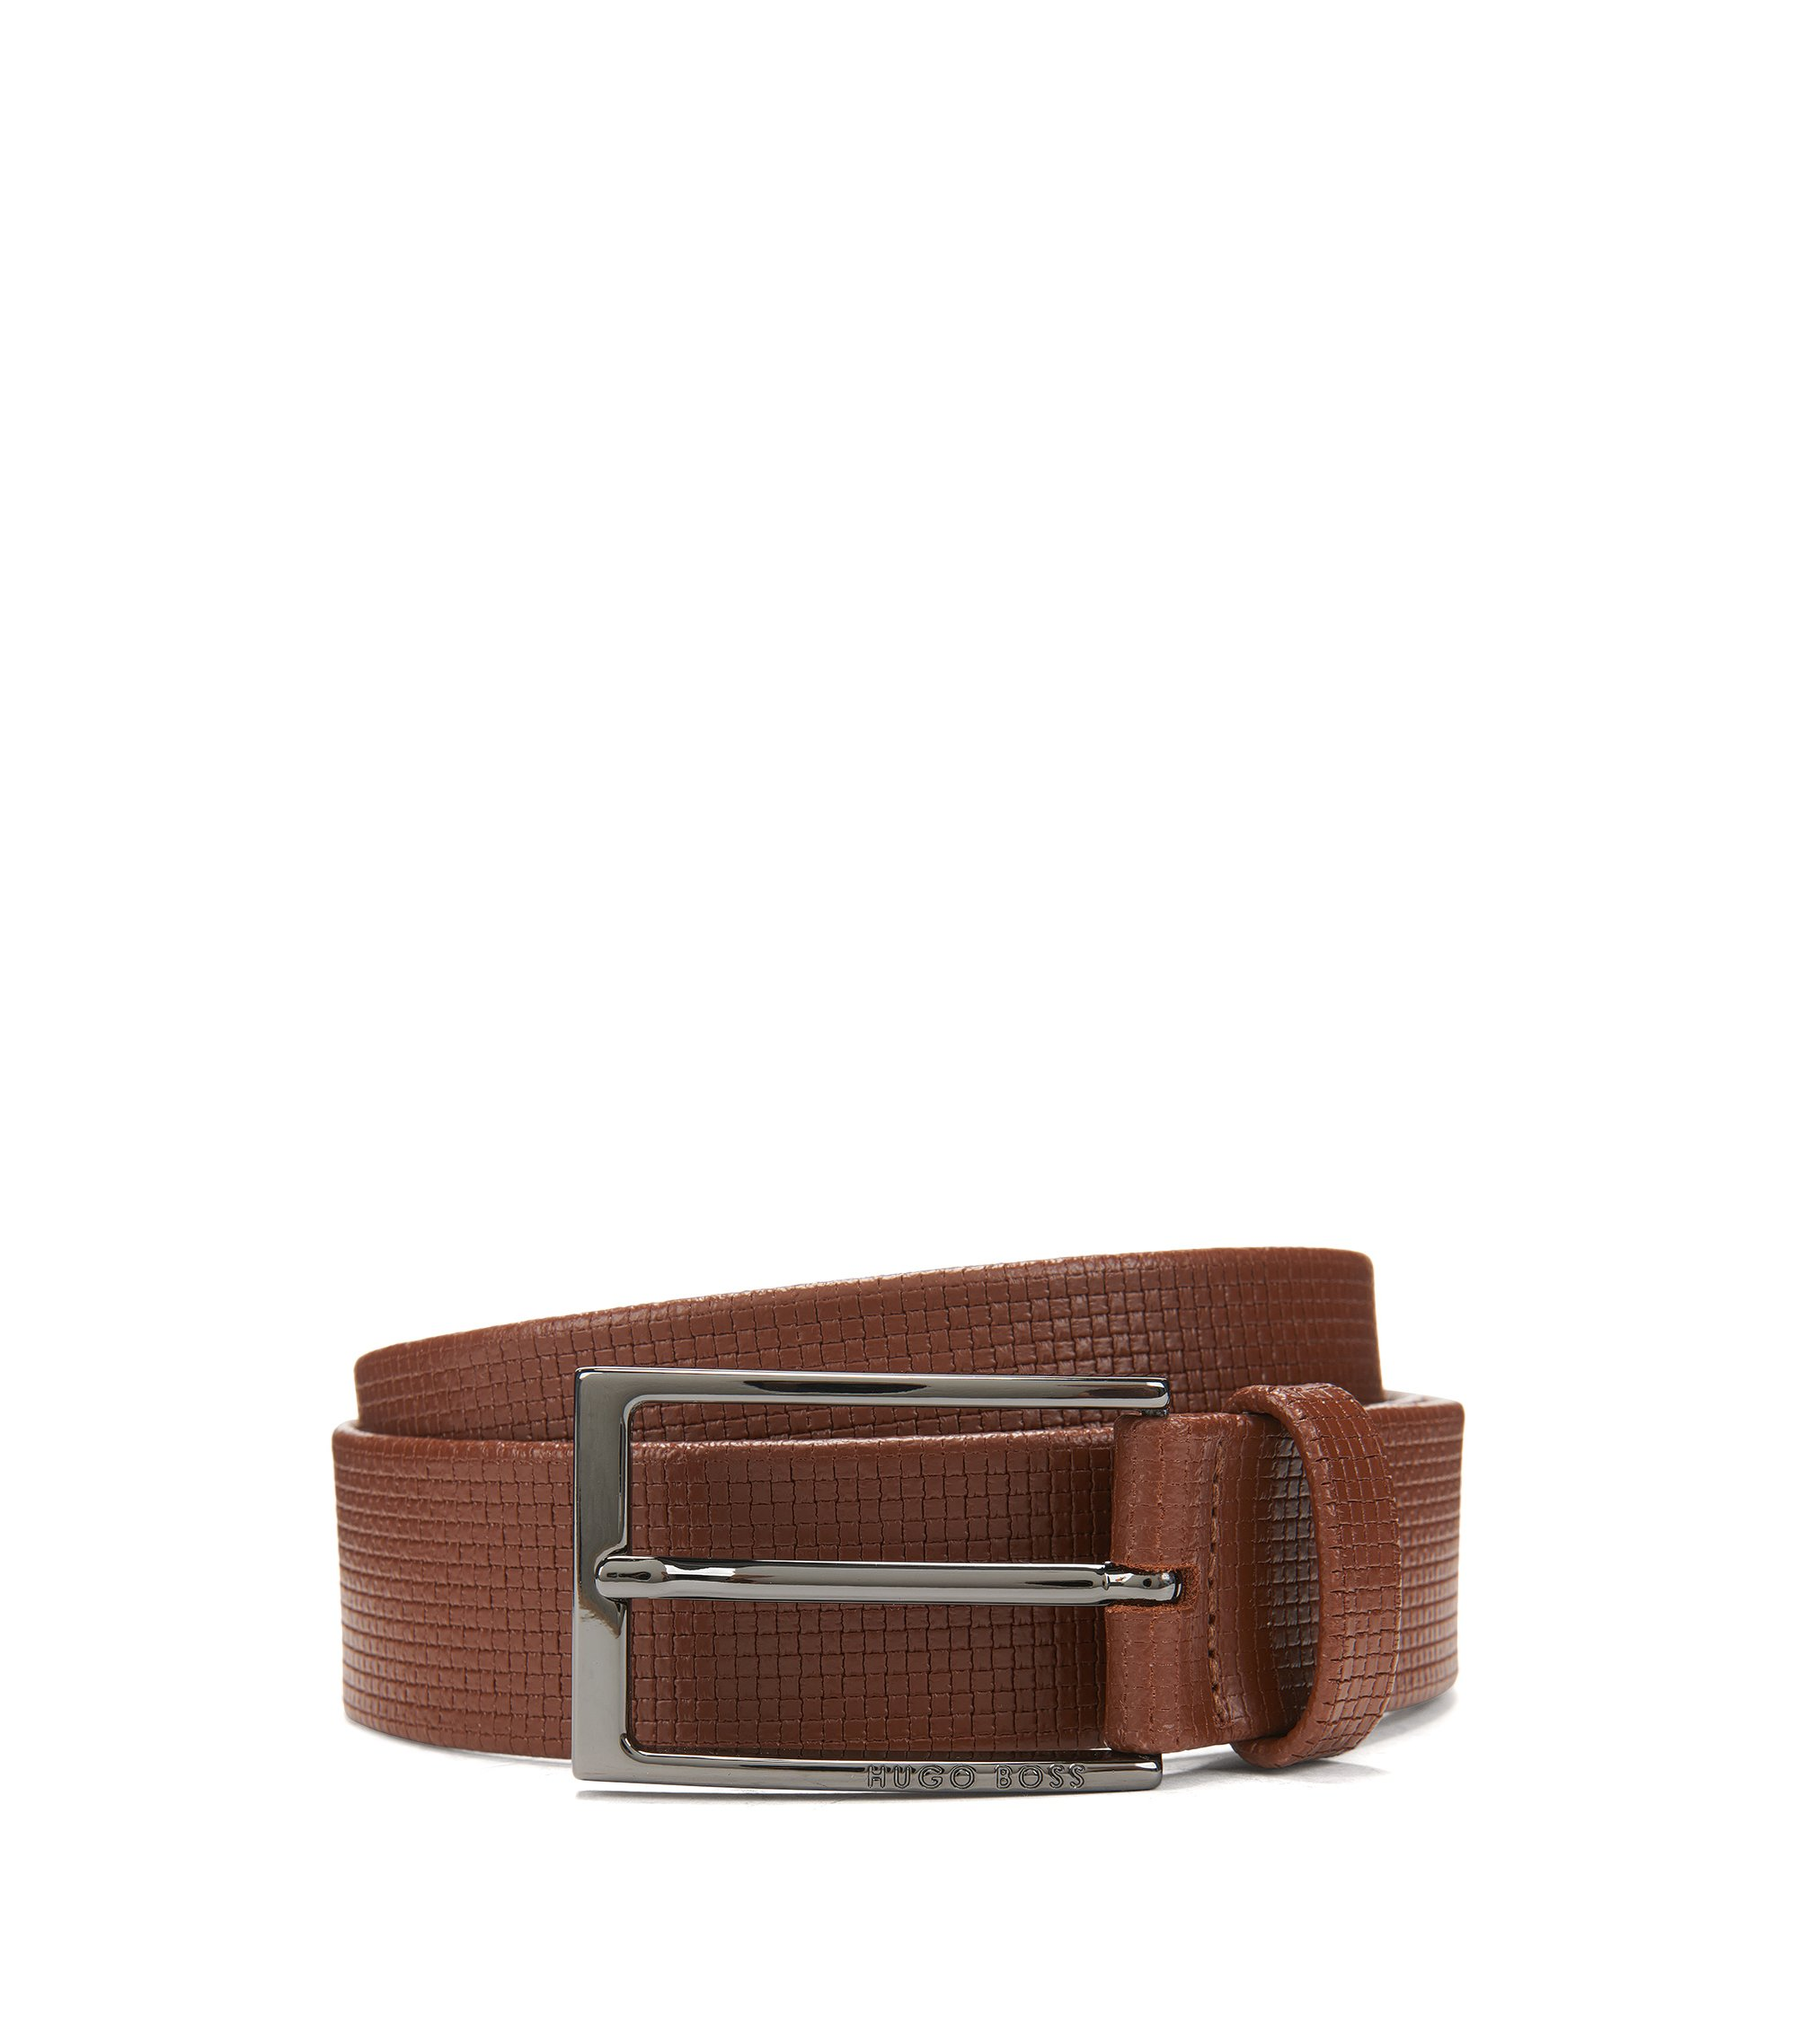 Basketweave-Embossed Leather Belt | Clauxy, Brown